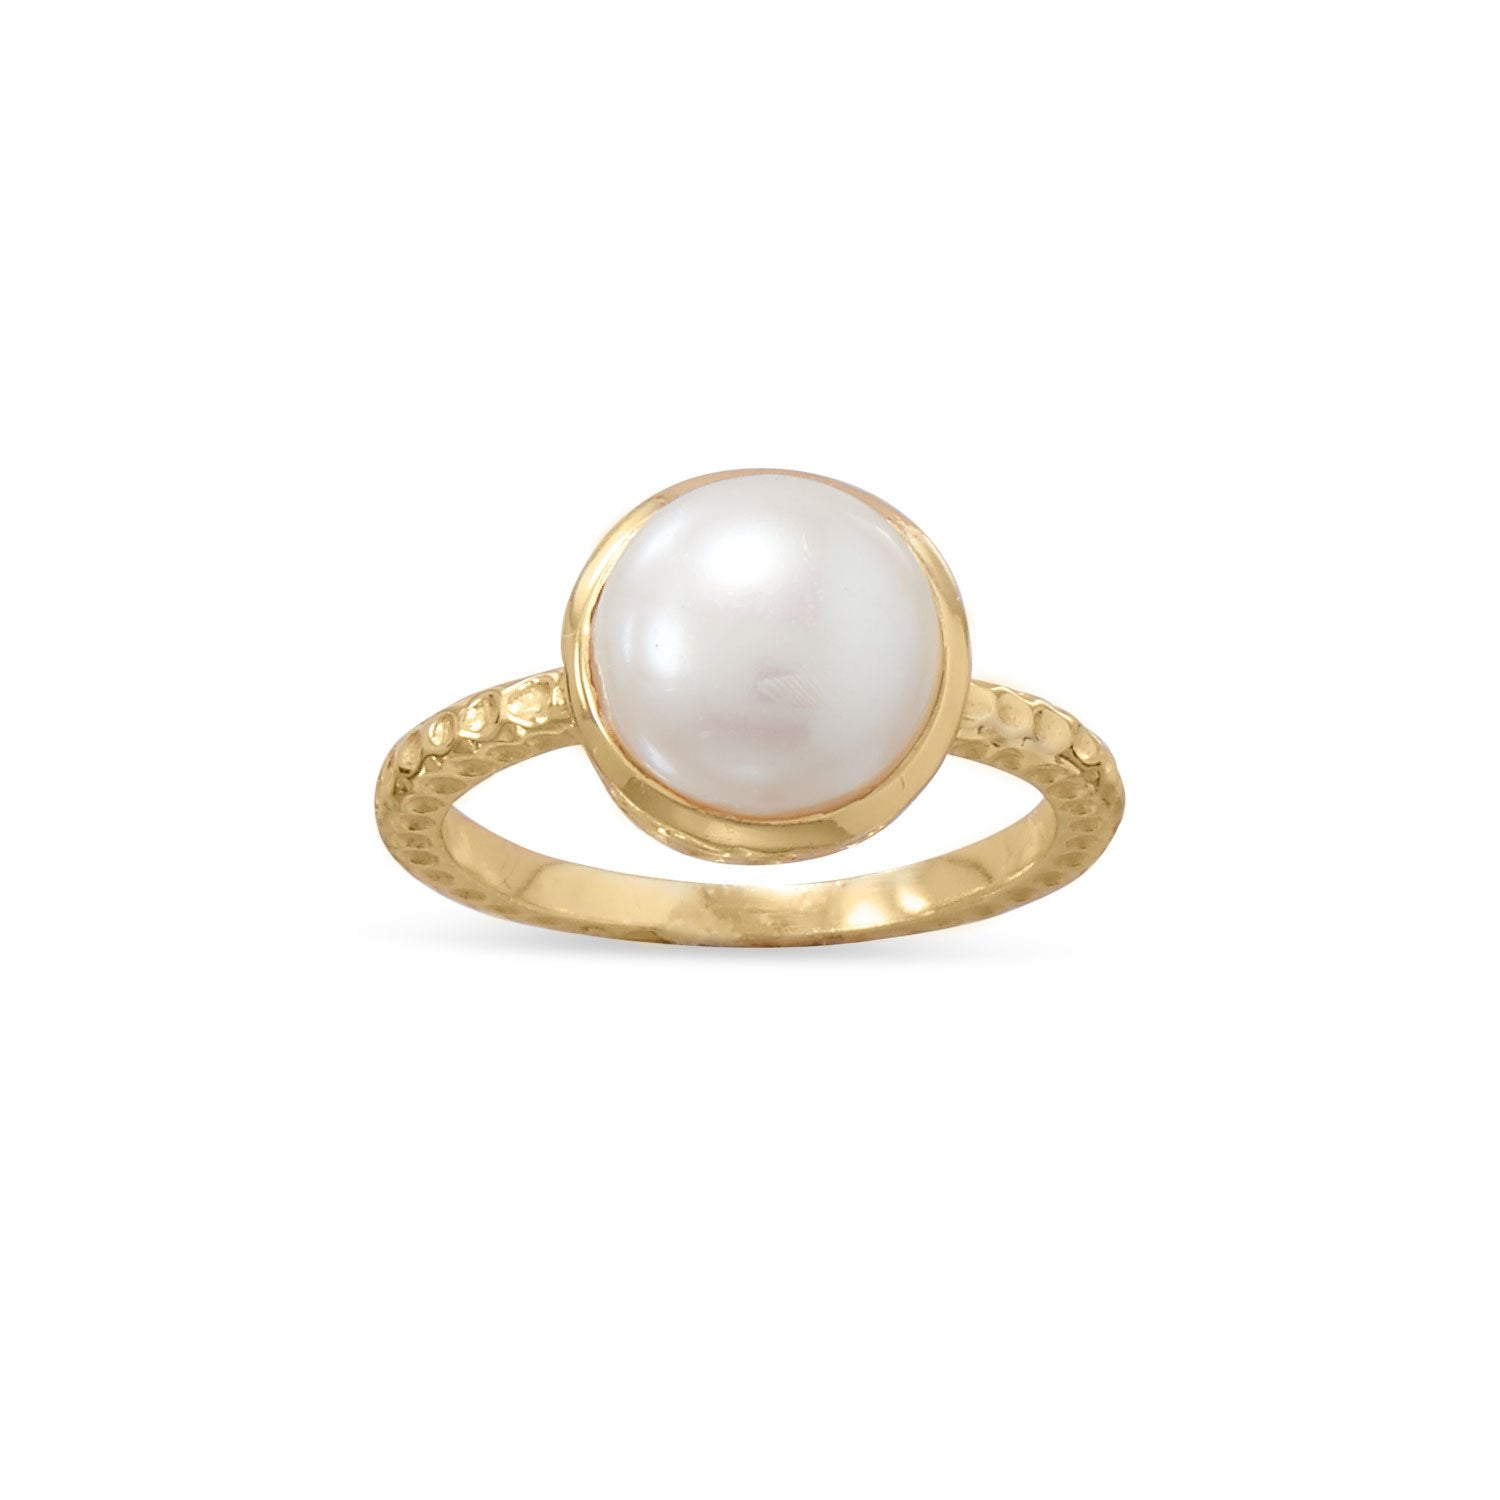 Gold Plated Cultured Freshwater Pearl Ring - the-southern-magnolia-too